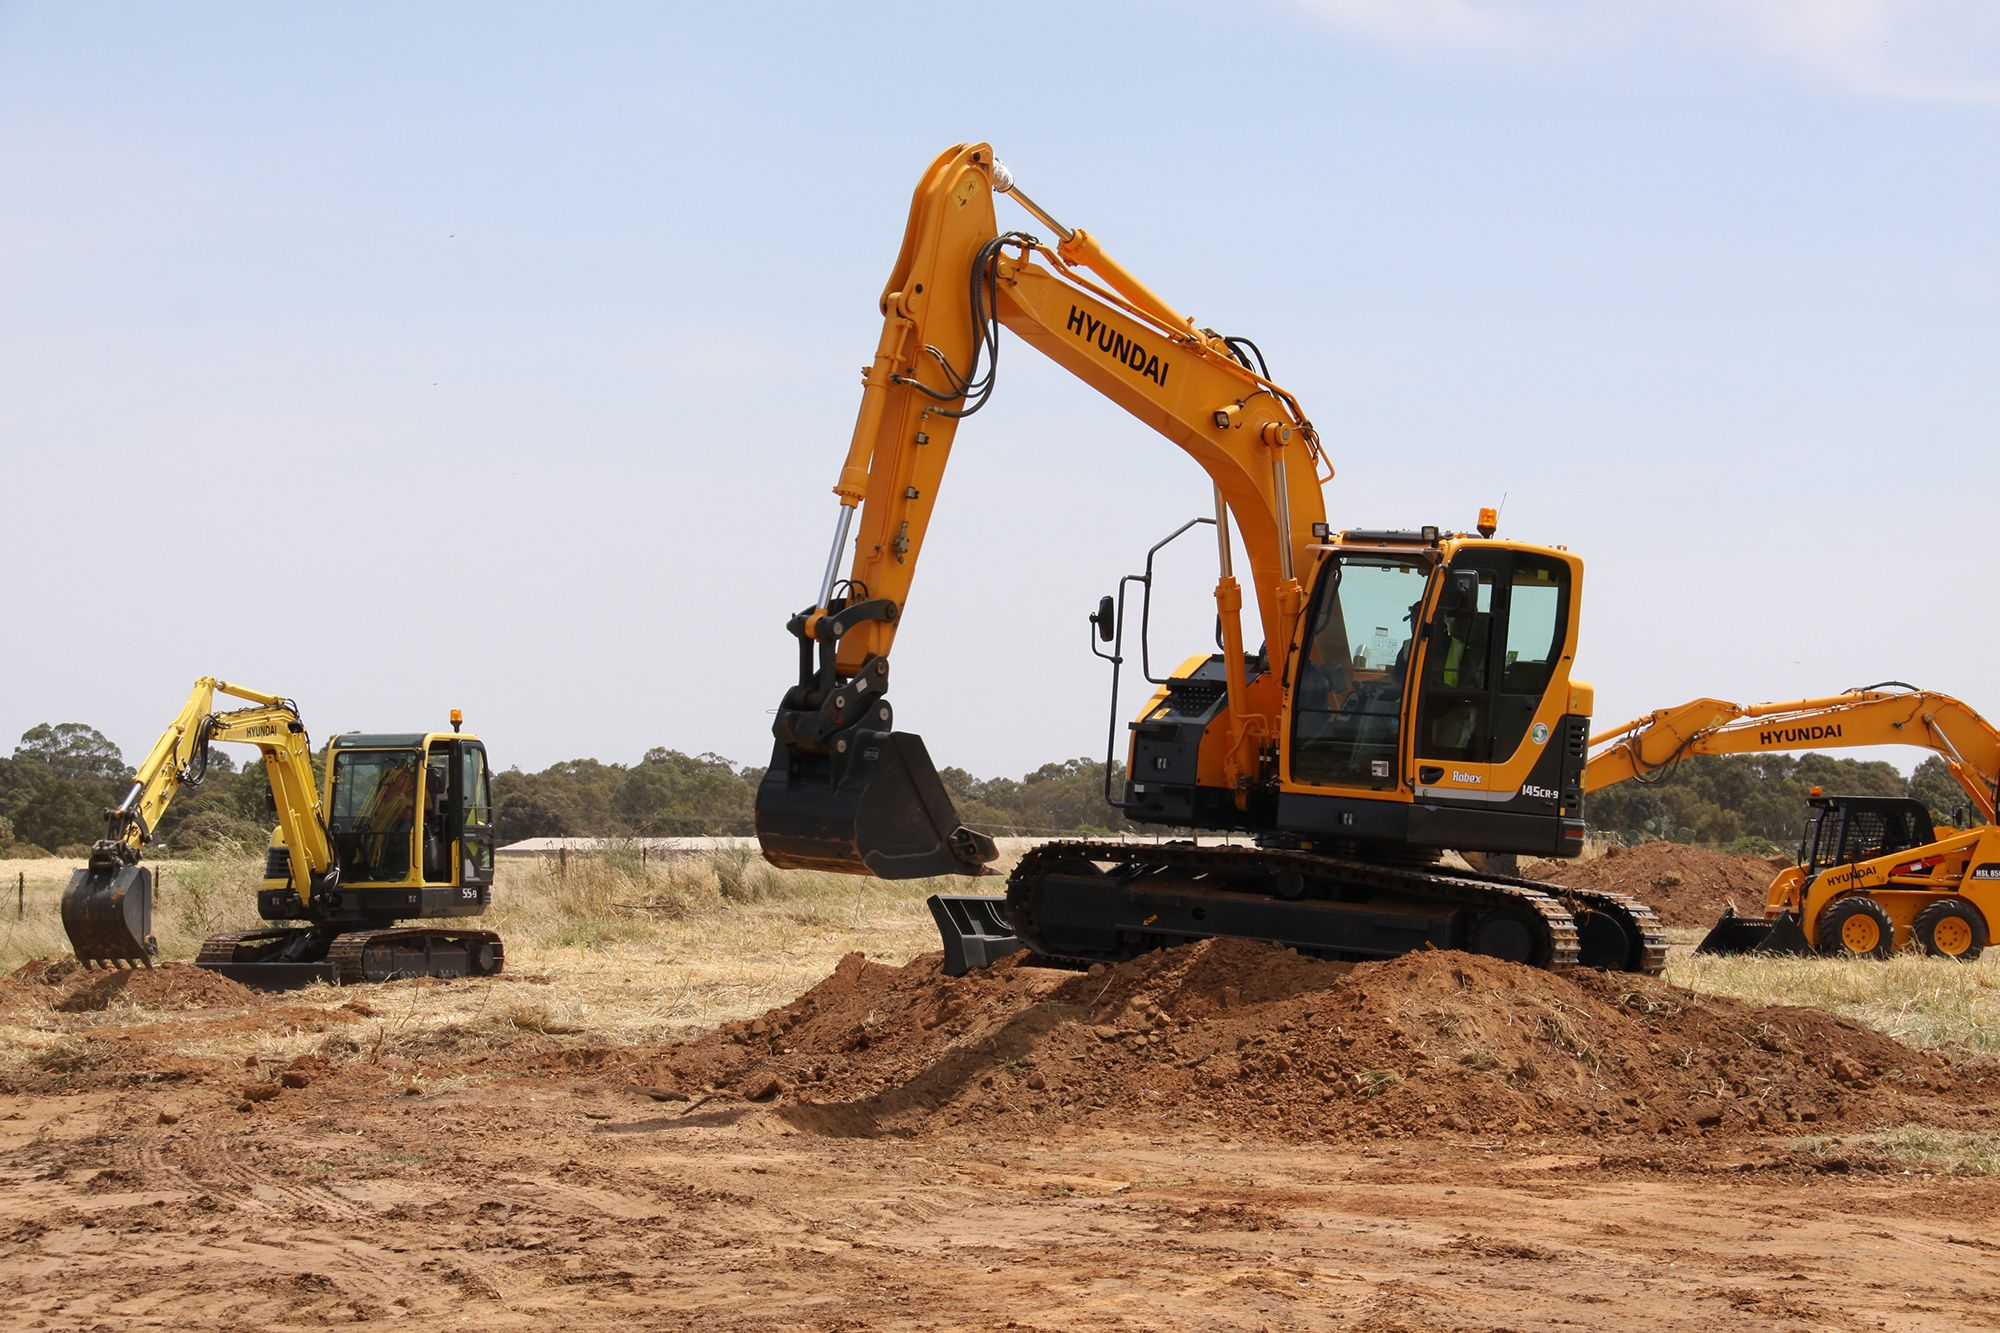 Hyundai 15t Excavator - R145CR-9 http://www.workwithconfidence.com